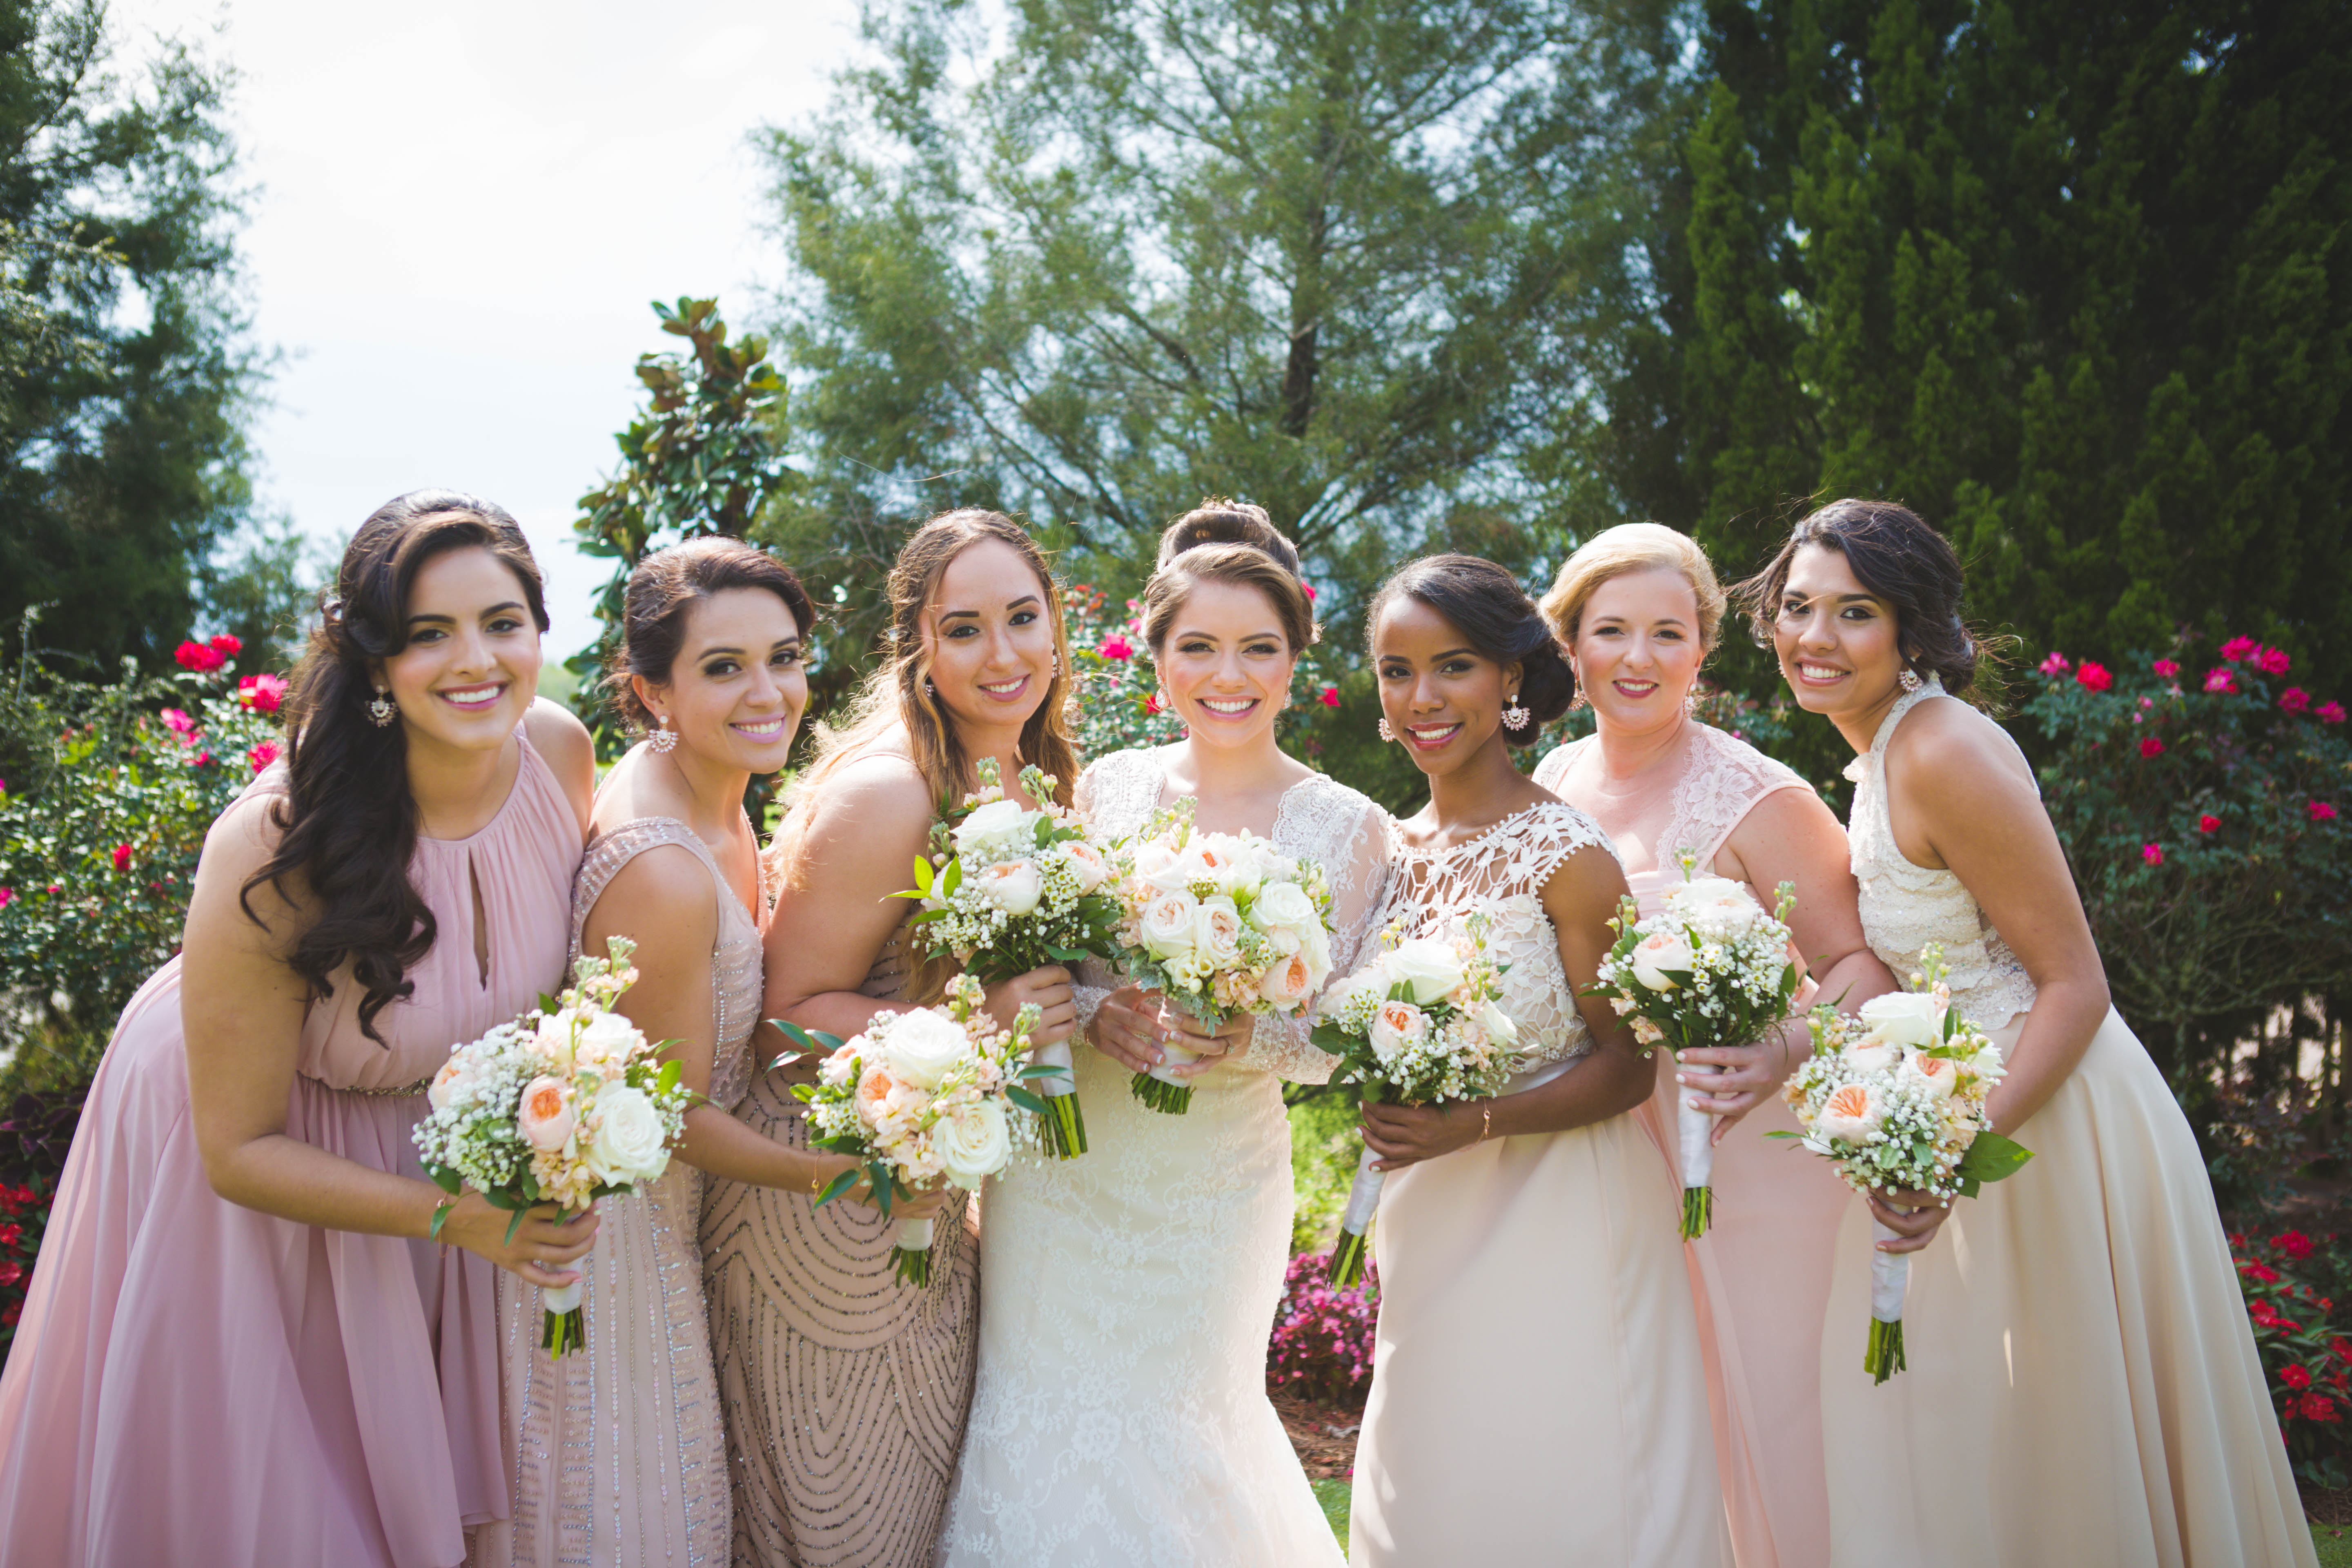 Izabella and Bridal Party